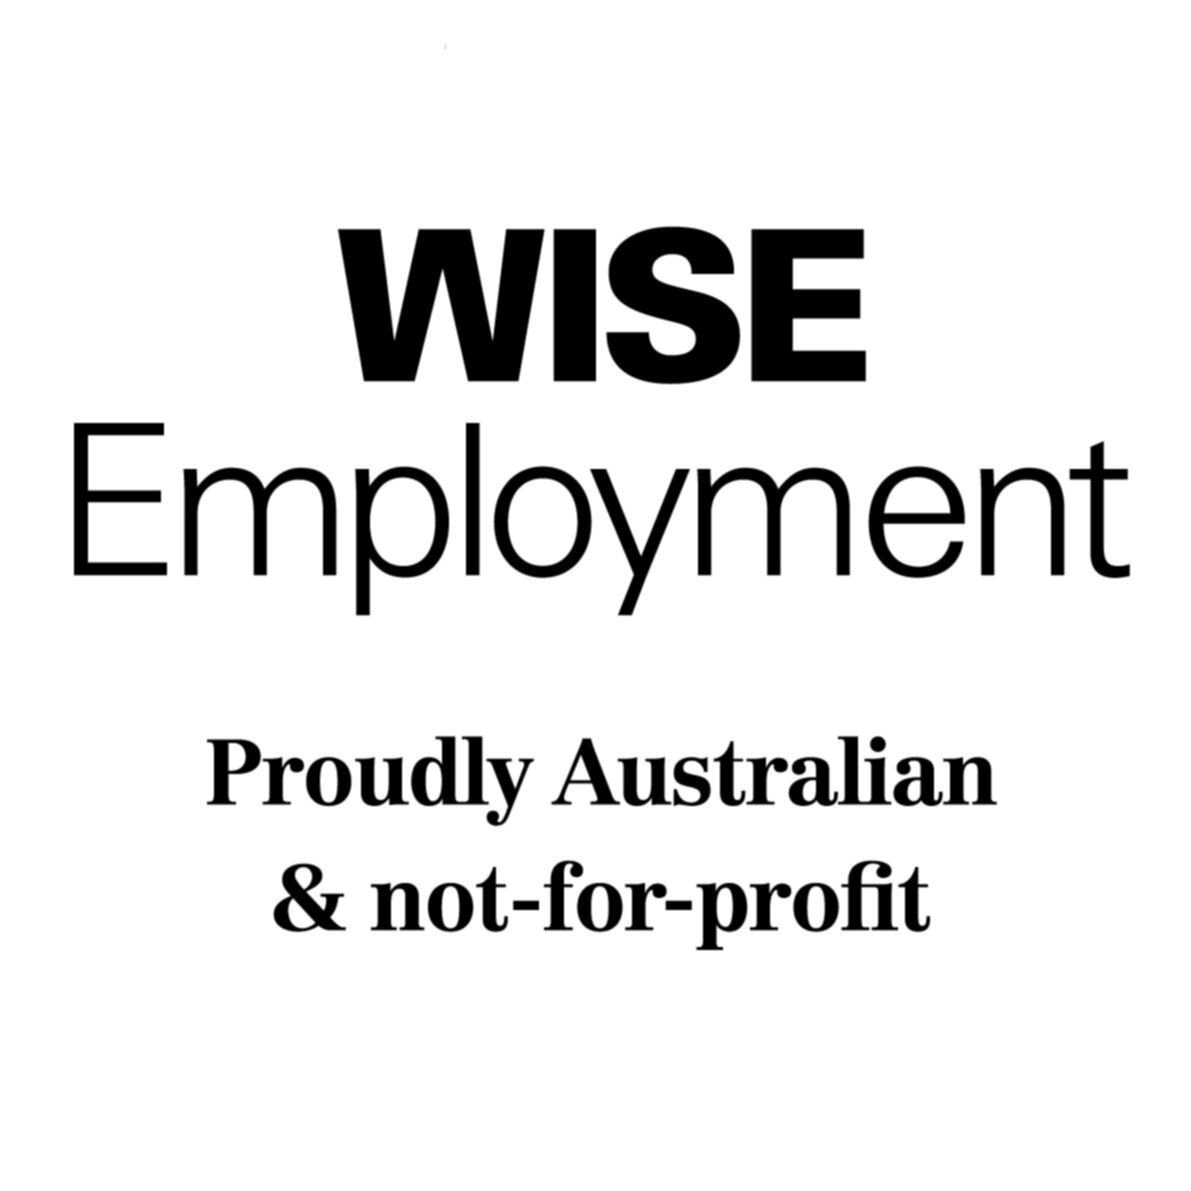 WISE Employment - Proudly Australian and Not-for-profit